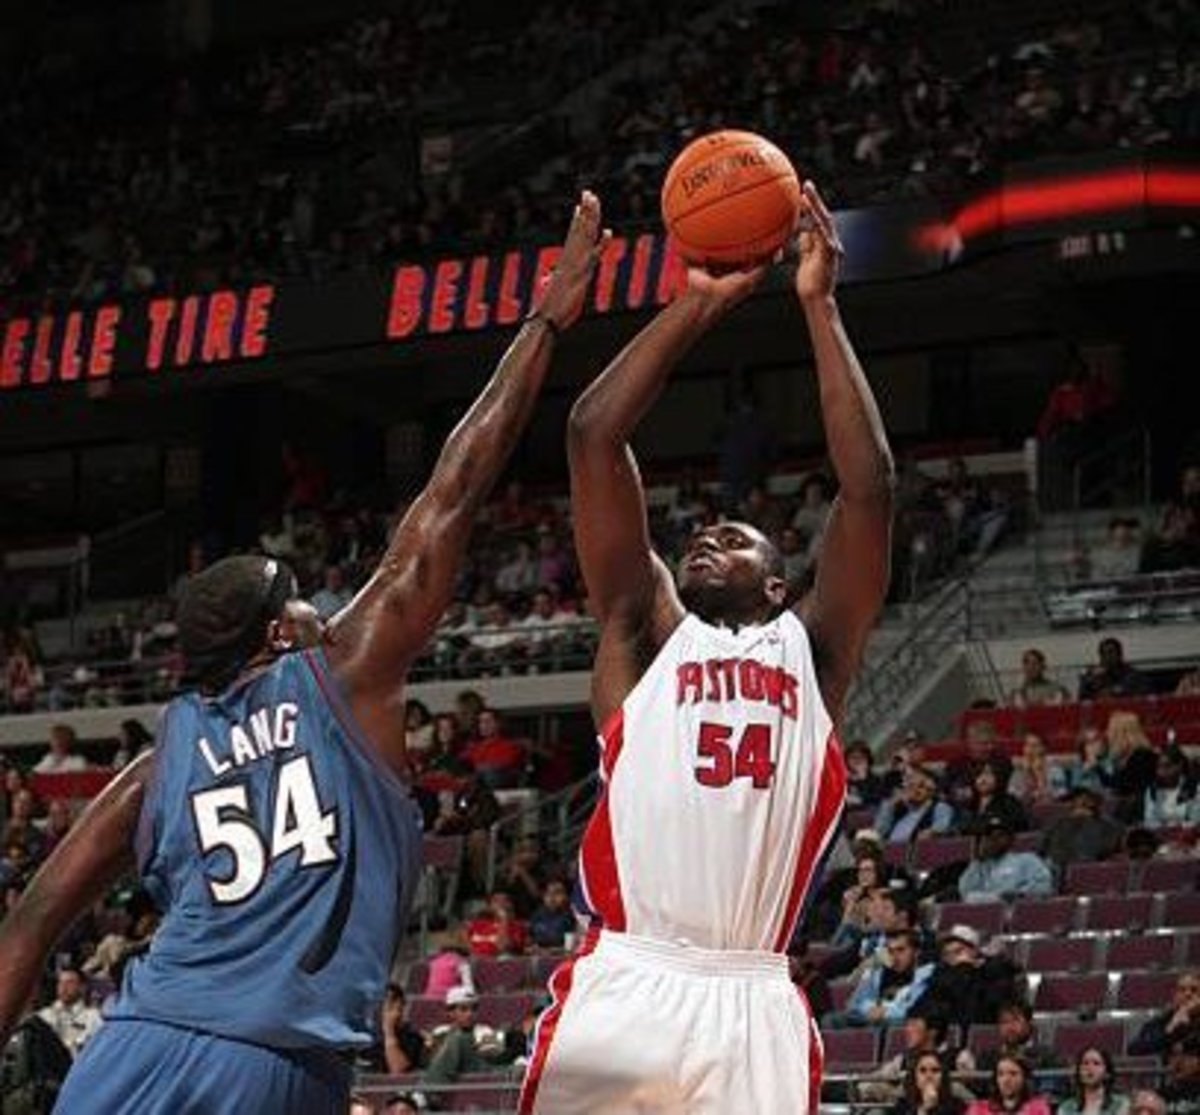 James Lang played for the Washington Wizards.